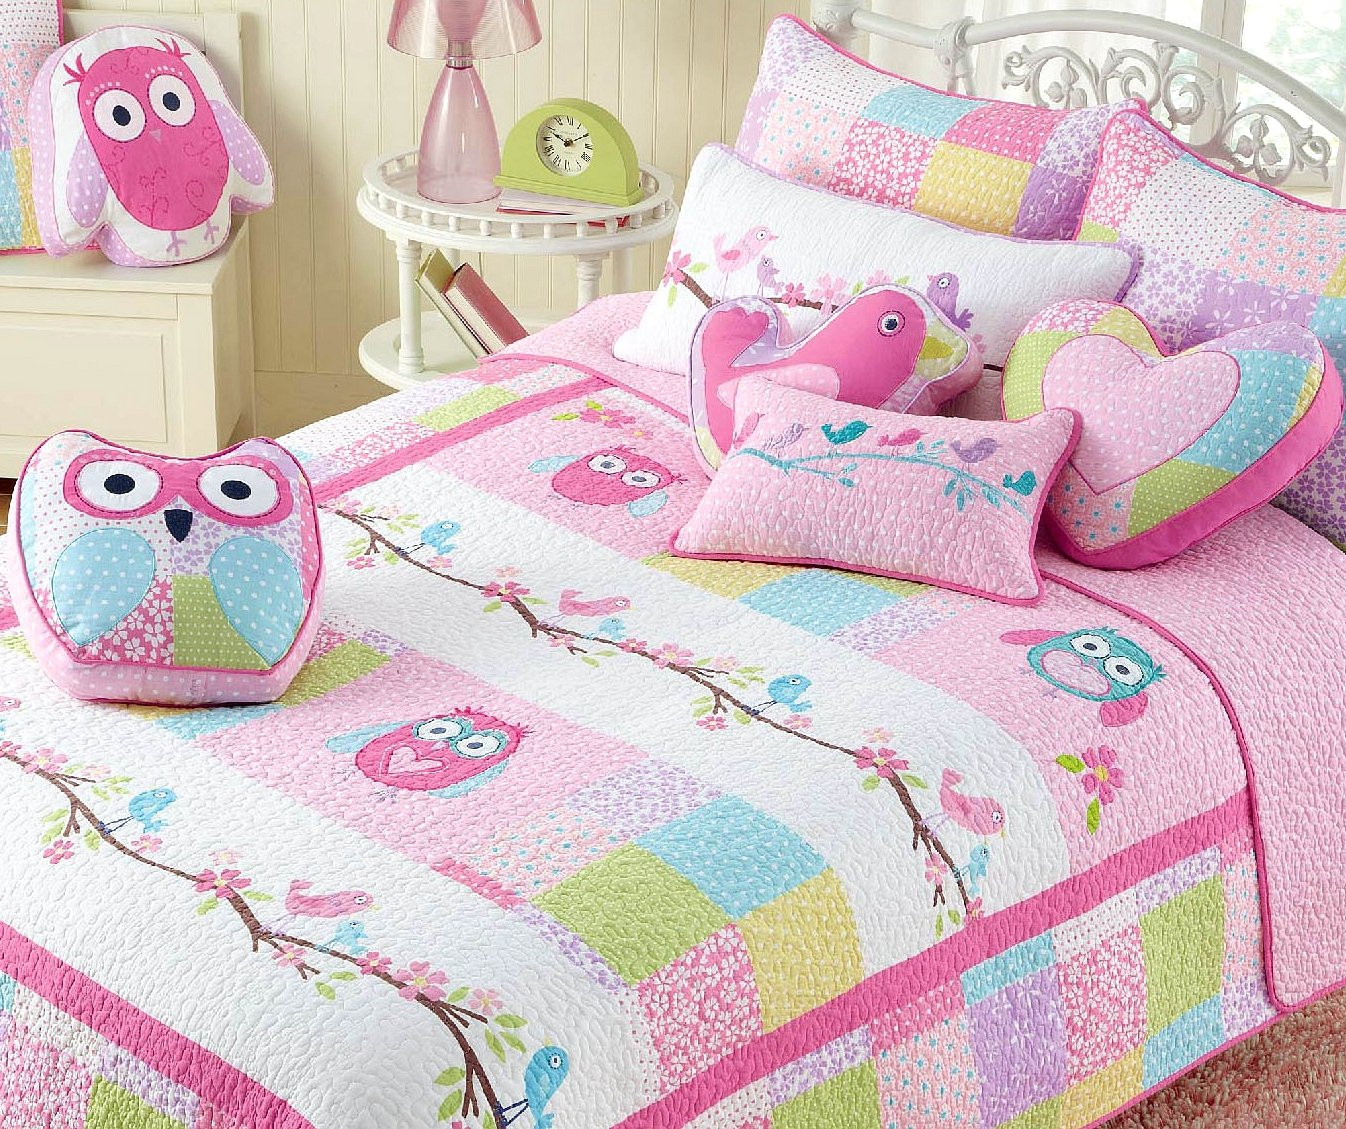 Cozy Line Home Fashions 7-Piece Pink Owl Blue Green White Dot Cotton Bedspread Quilt Bedding Set, includes 1 Quilt, 2 Shams, 4 Decorative Pillows, Christmas Gifts Set for Kids Girls, Full Queen Size